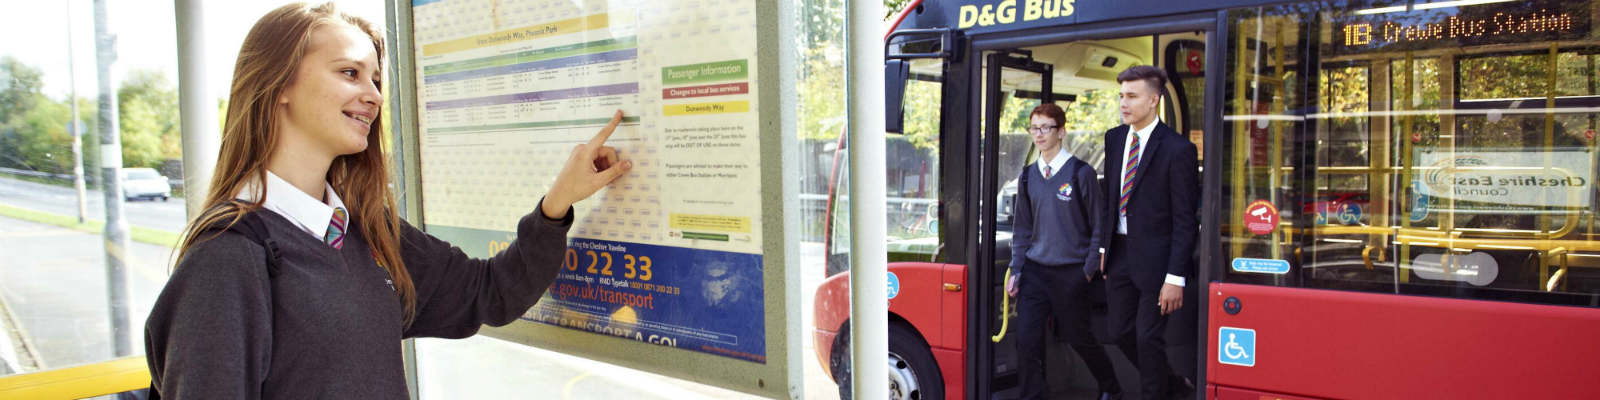 A school girl looks at a bus timetable